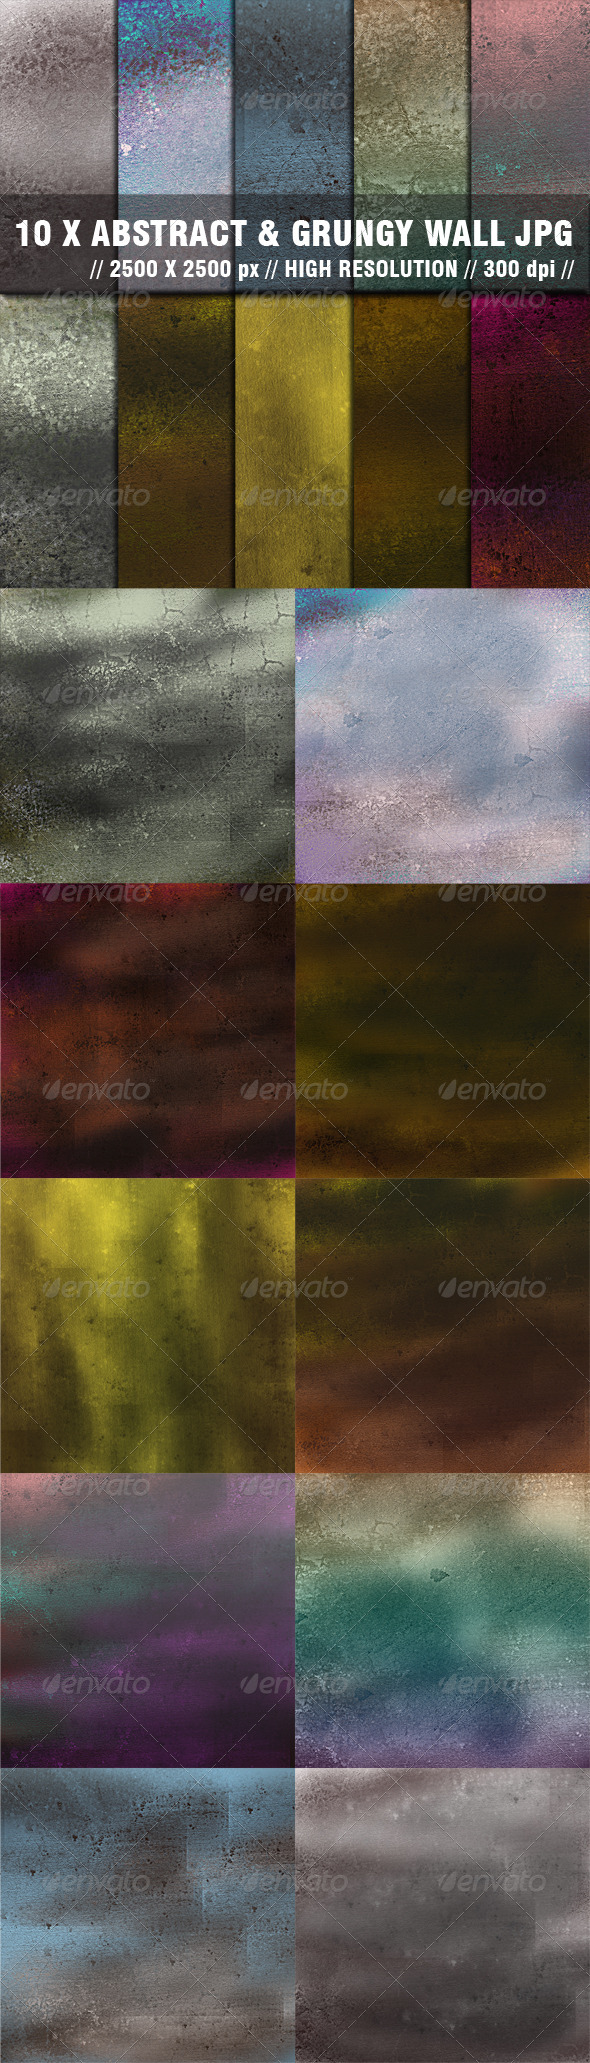 Abstract Grunge Wall - Abstract Backgrounds